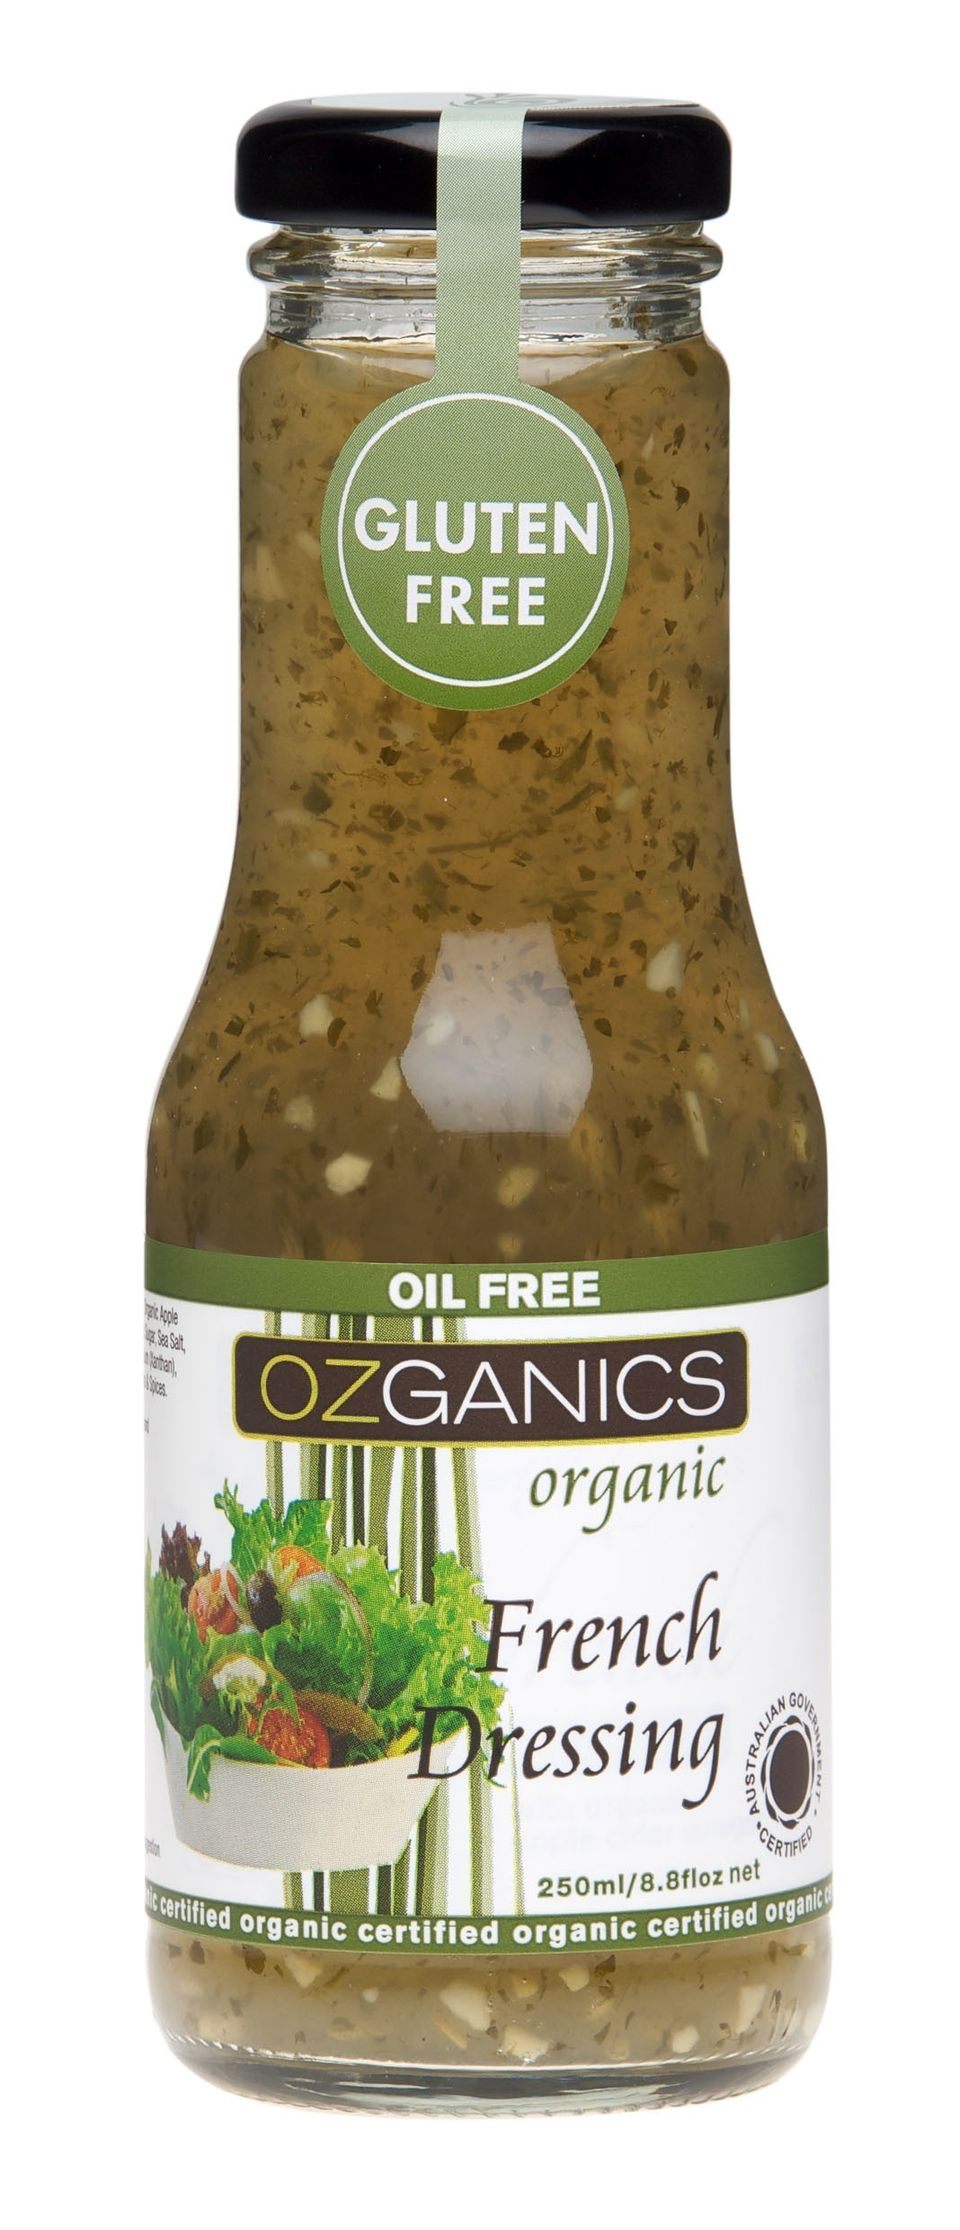 Oil-Free French Dressing